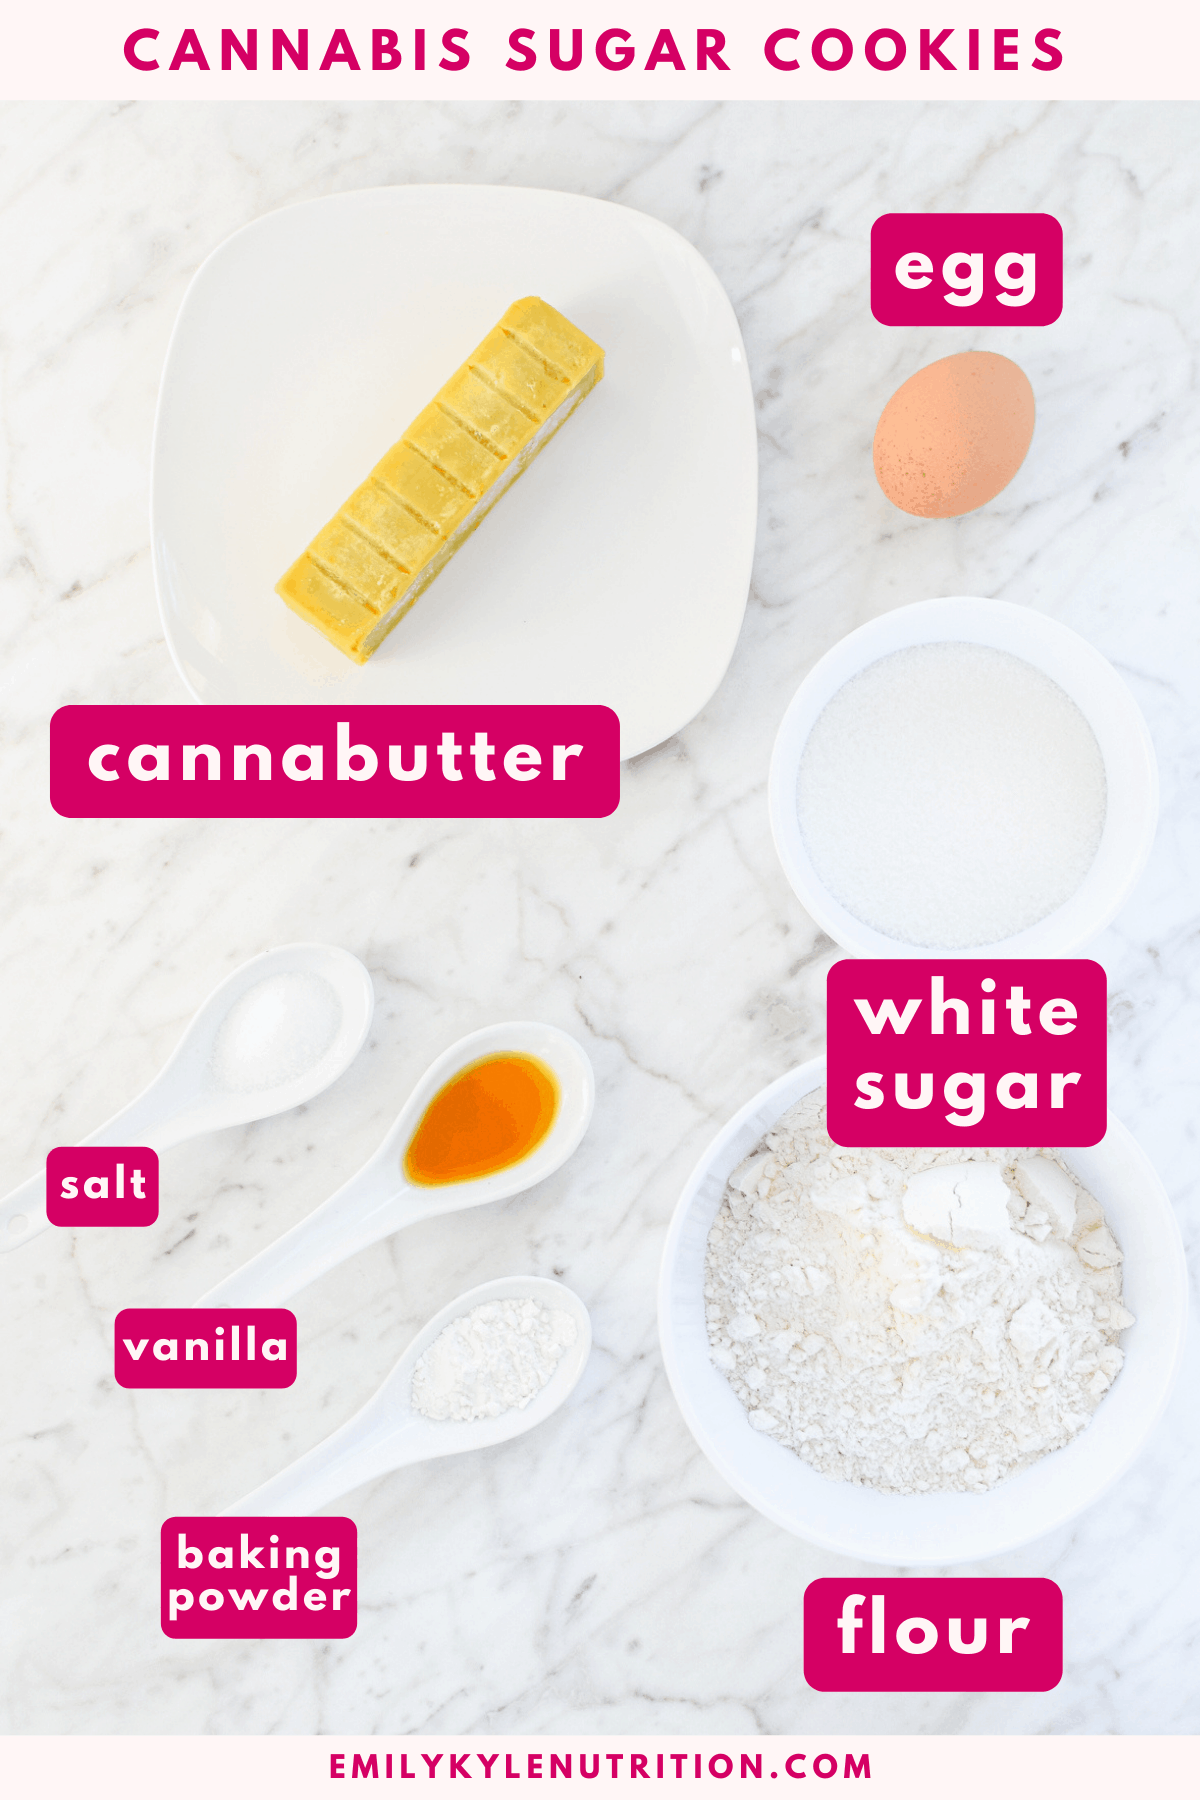 A white marble countertop with the ingredients needed to make cannabis sugar cookies including cannabutter, white sugar, egg, salt, vanilla, baking powder and flour